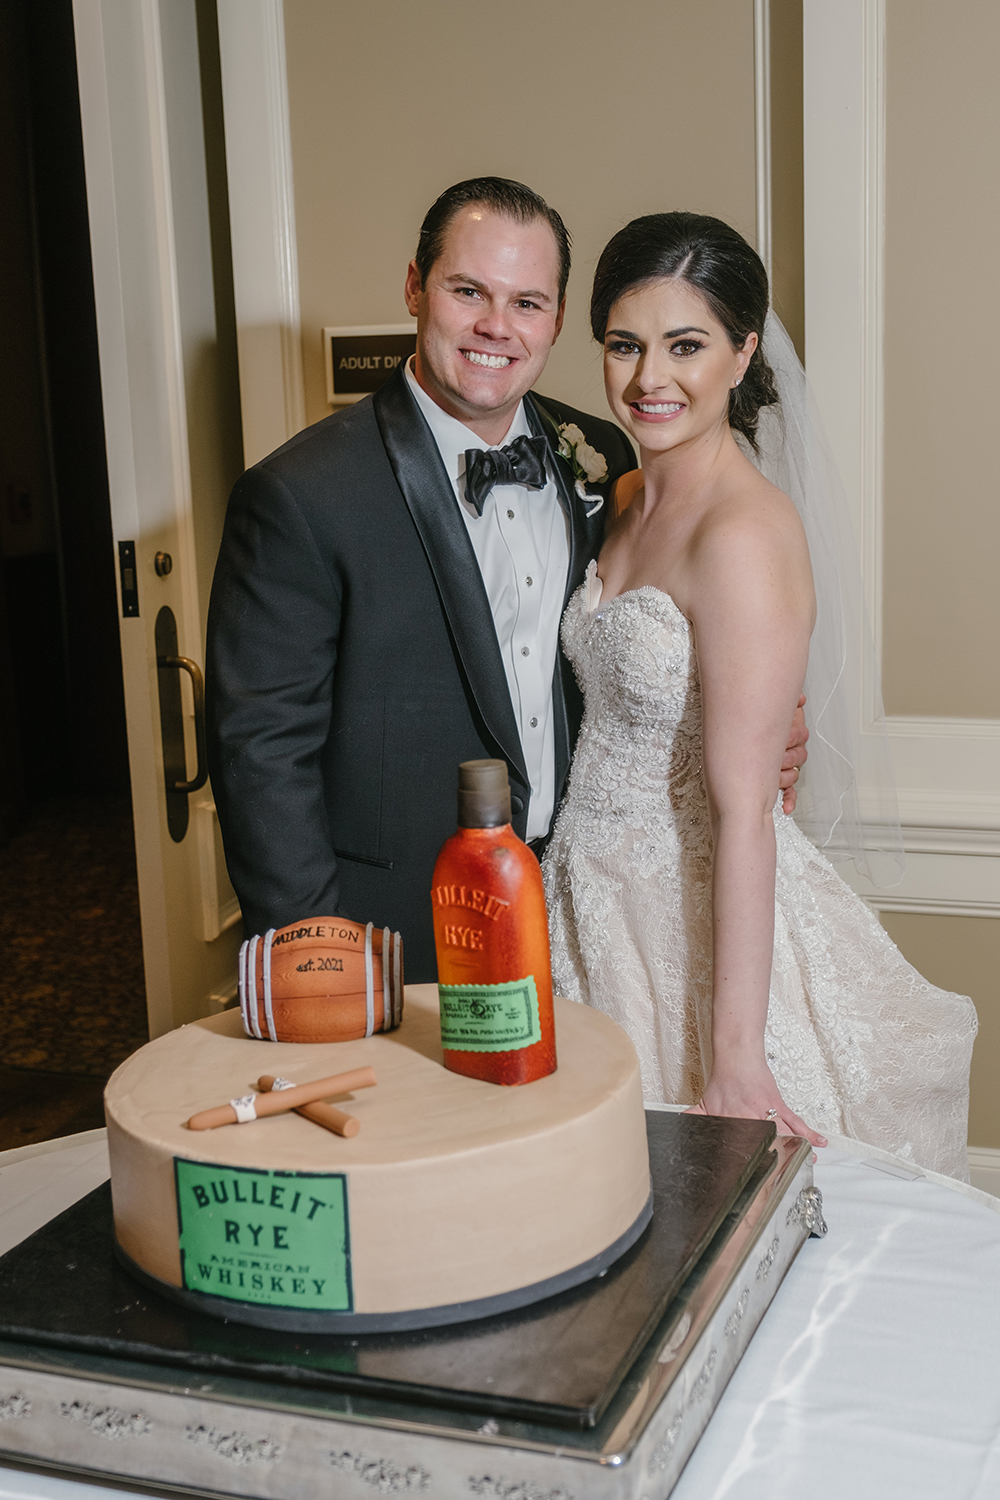 The bride and groom pose with the groom's cake